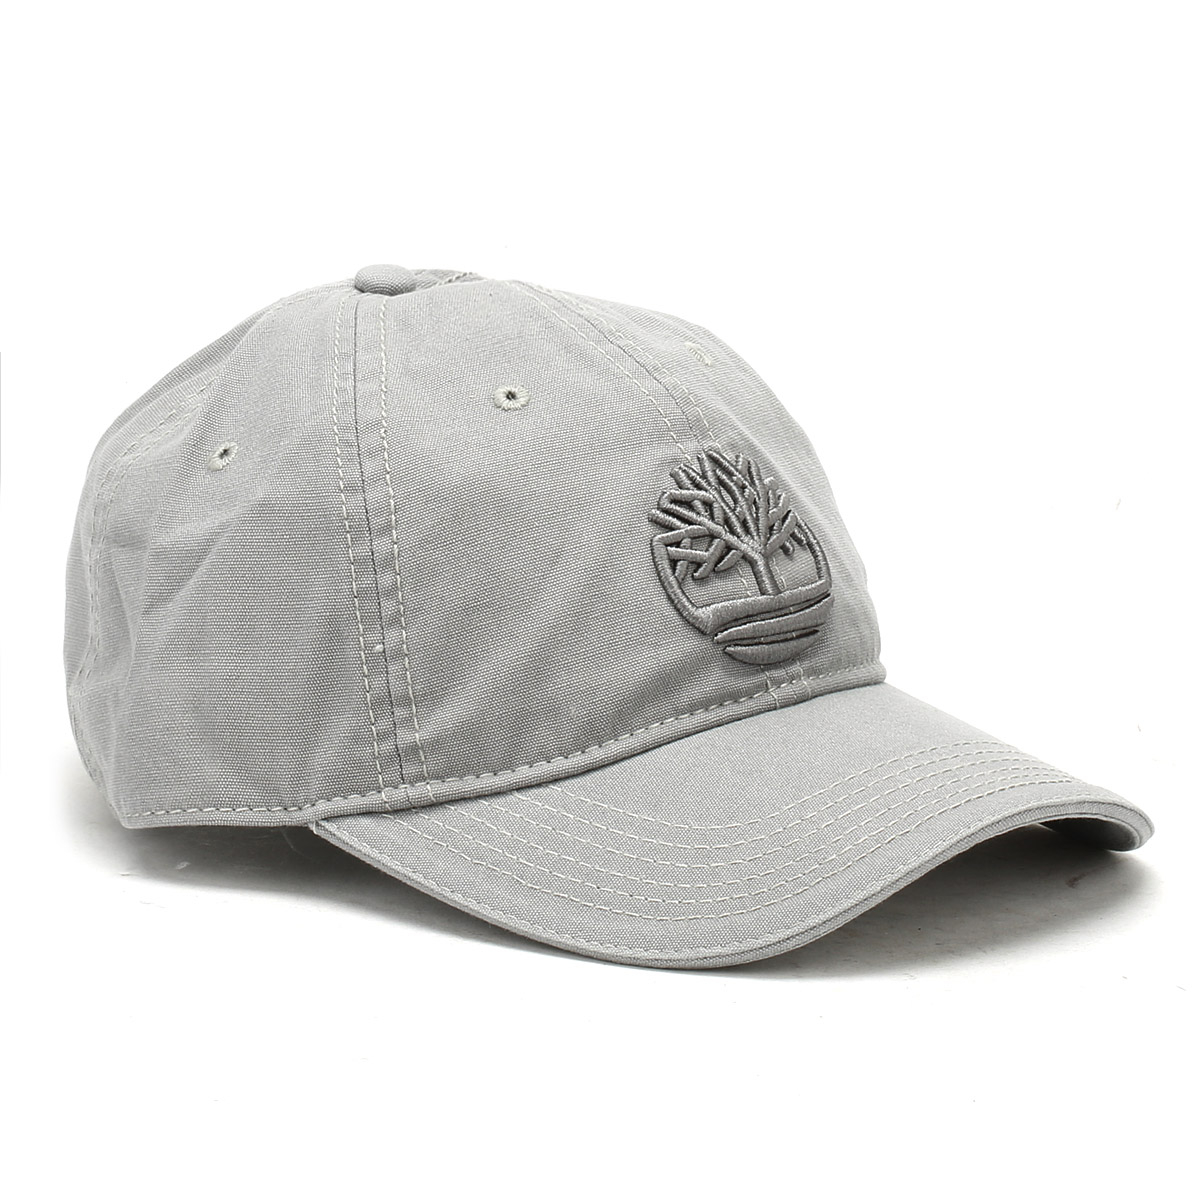 efce9b426 Details about Timberland Grey Canvas Baseball Cap Unisex Casual Hat